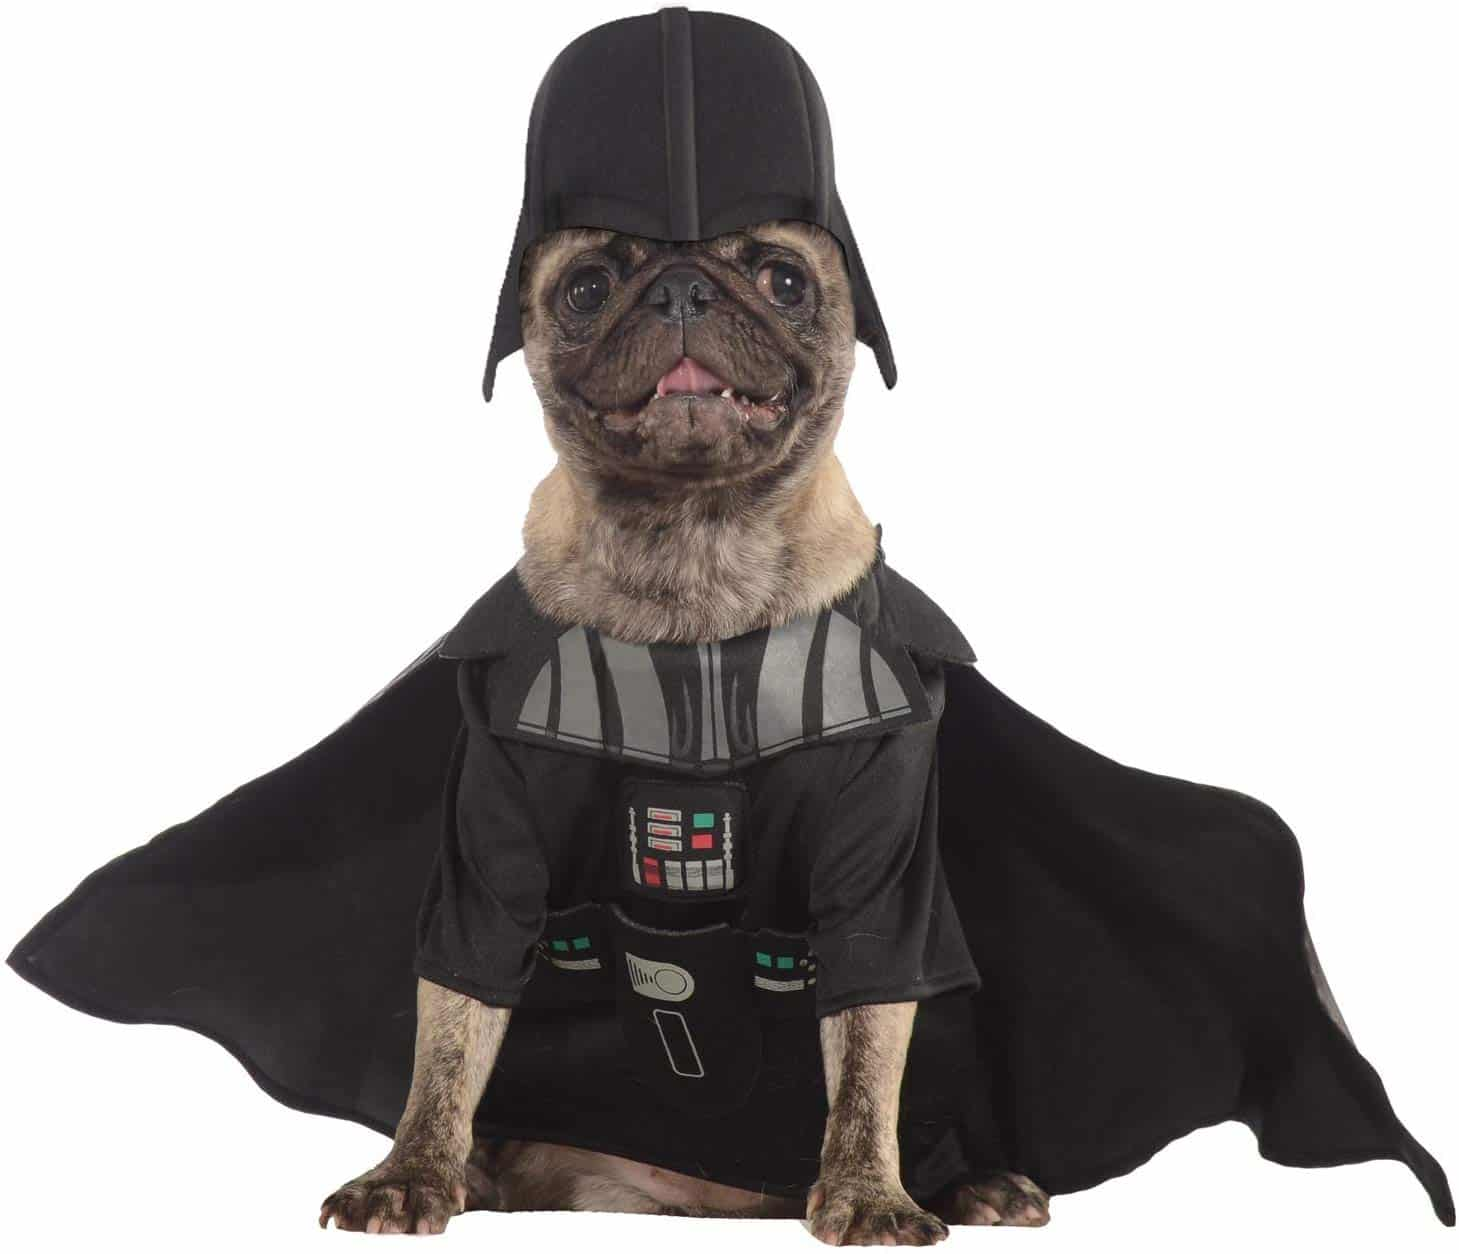 pug carlino con disfraz de star wars